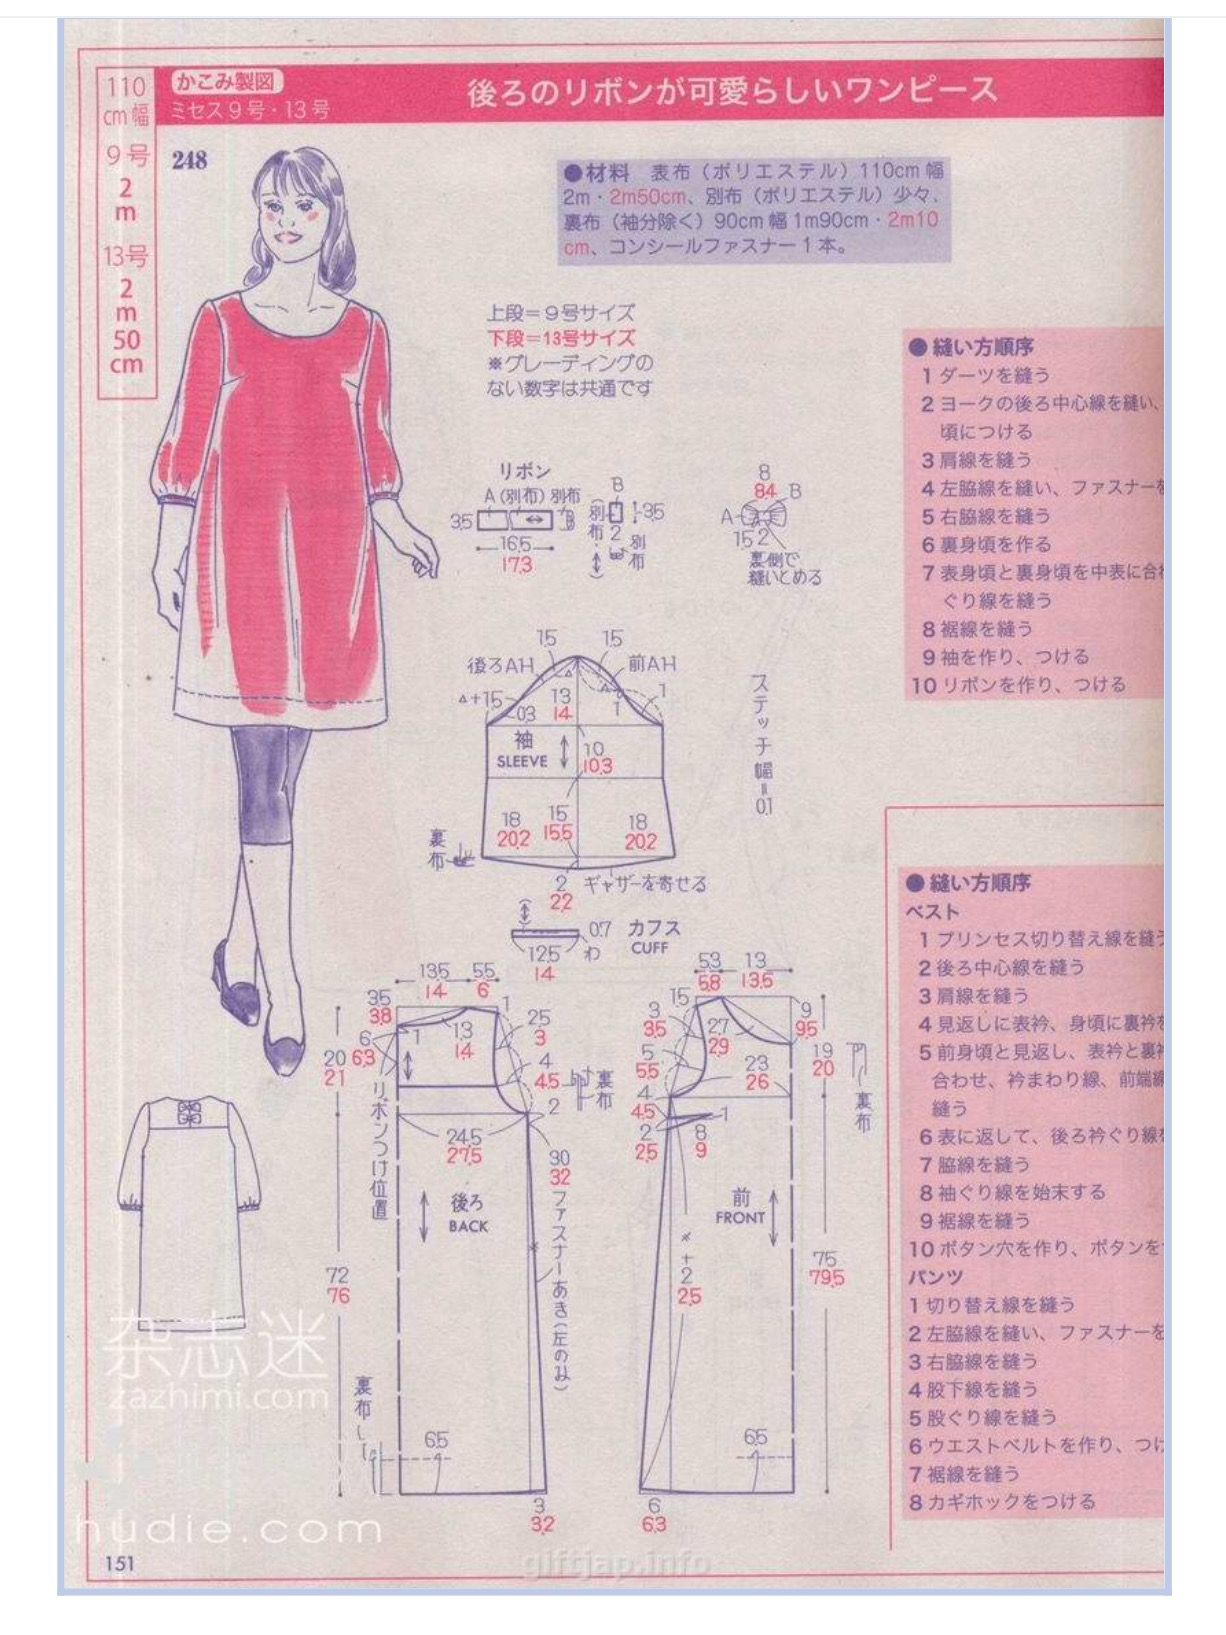 Pin by chung chiang tai on pinterest sewing patterns clothes patterns sewing clothes dress patterns japanese sewing patterns ladies boutique sew pattern pattern design easy patterns boutiques jeuxipadfo Image collections